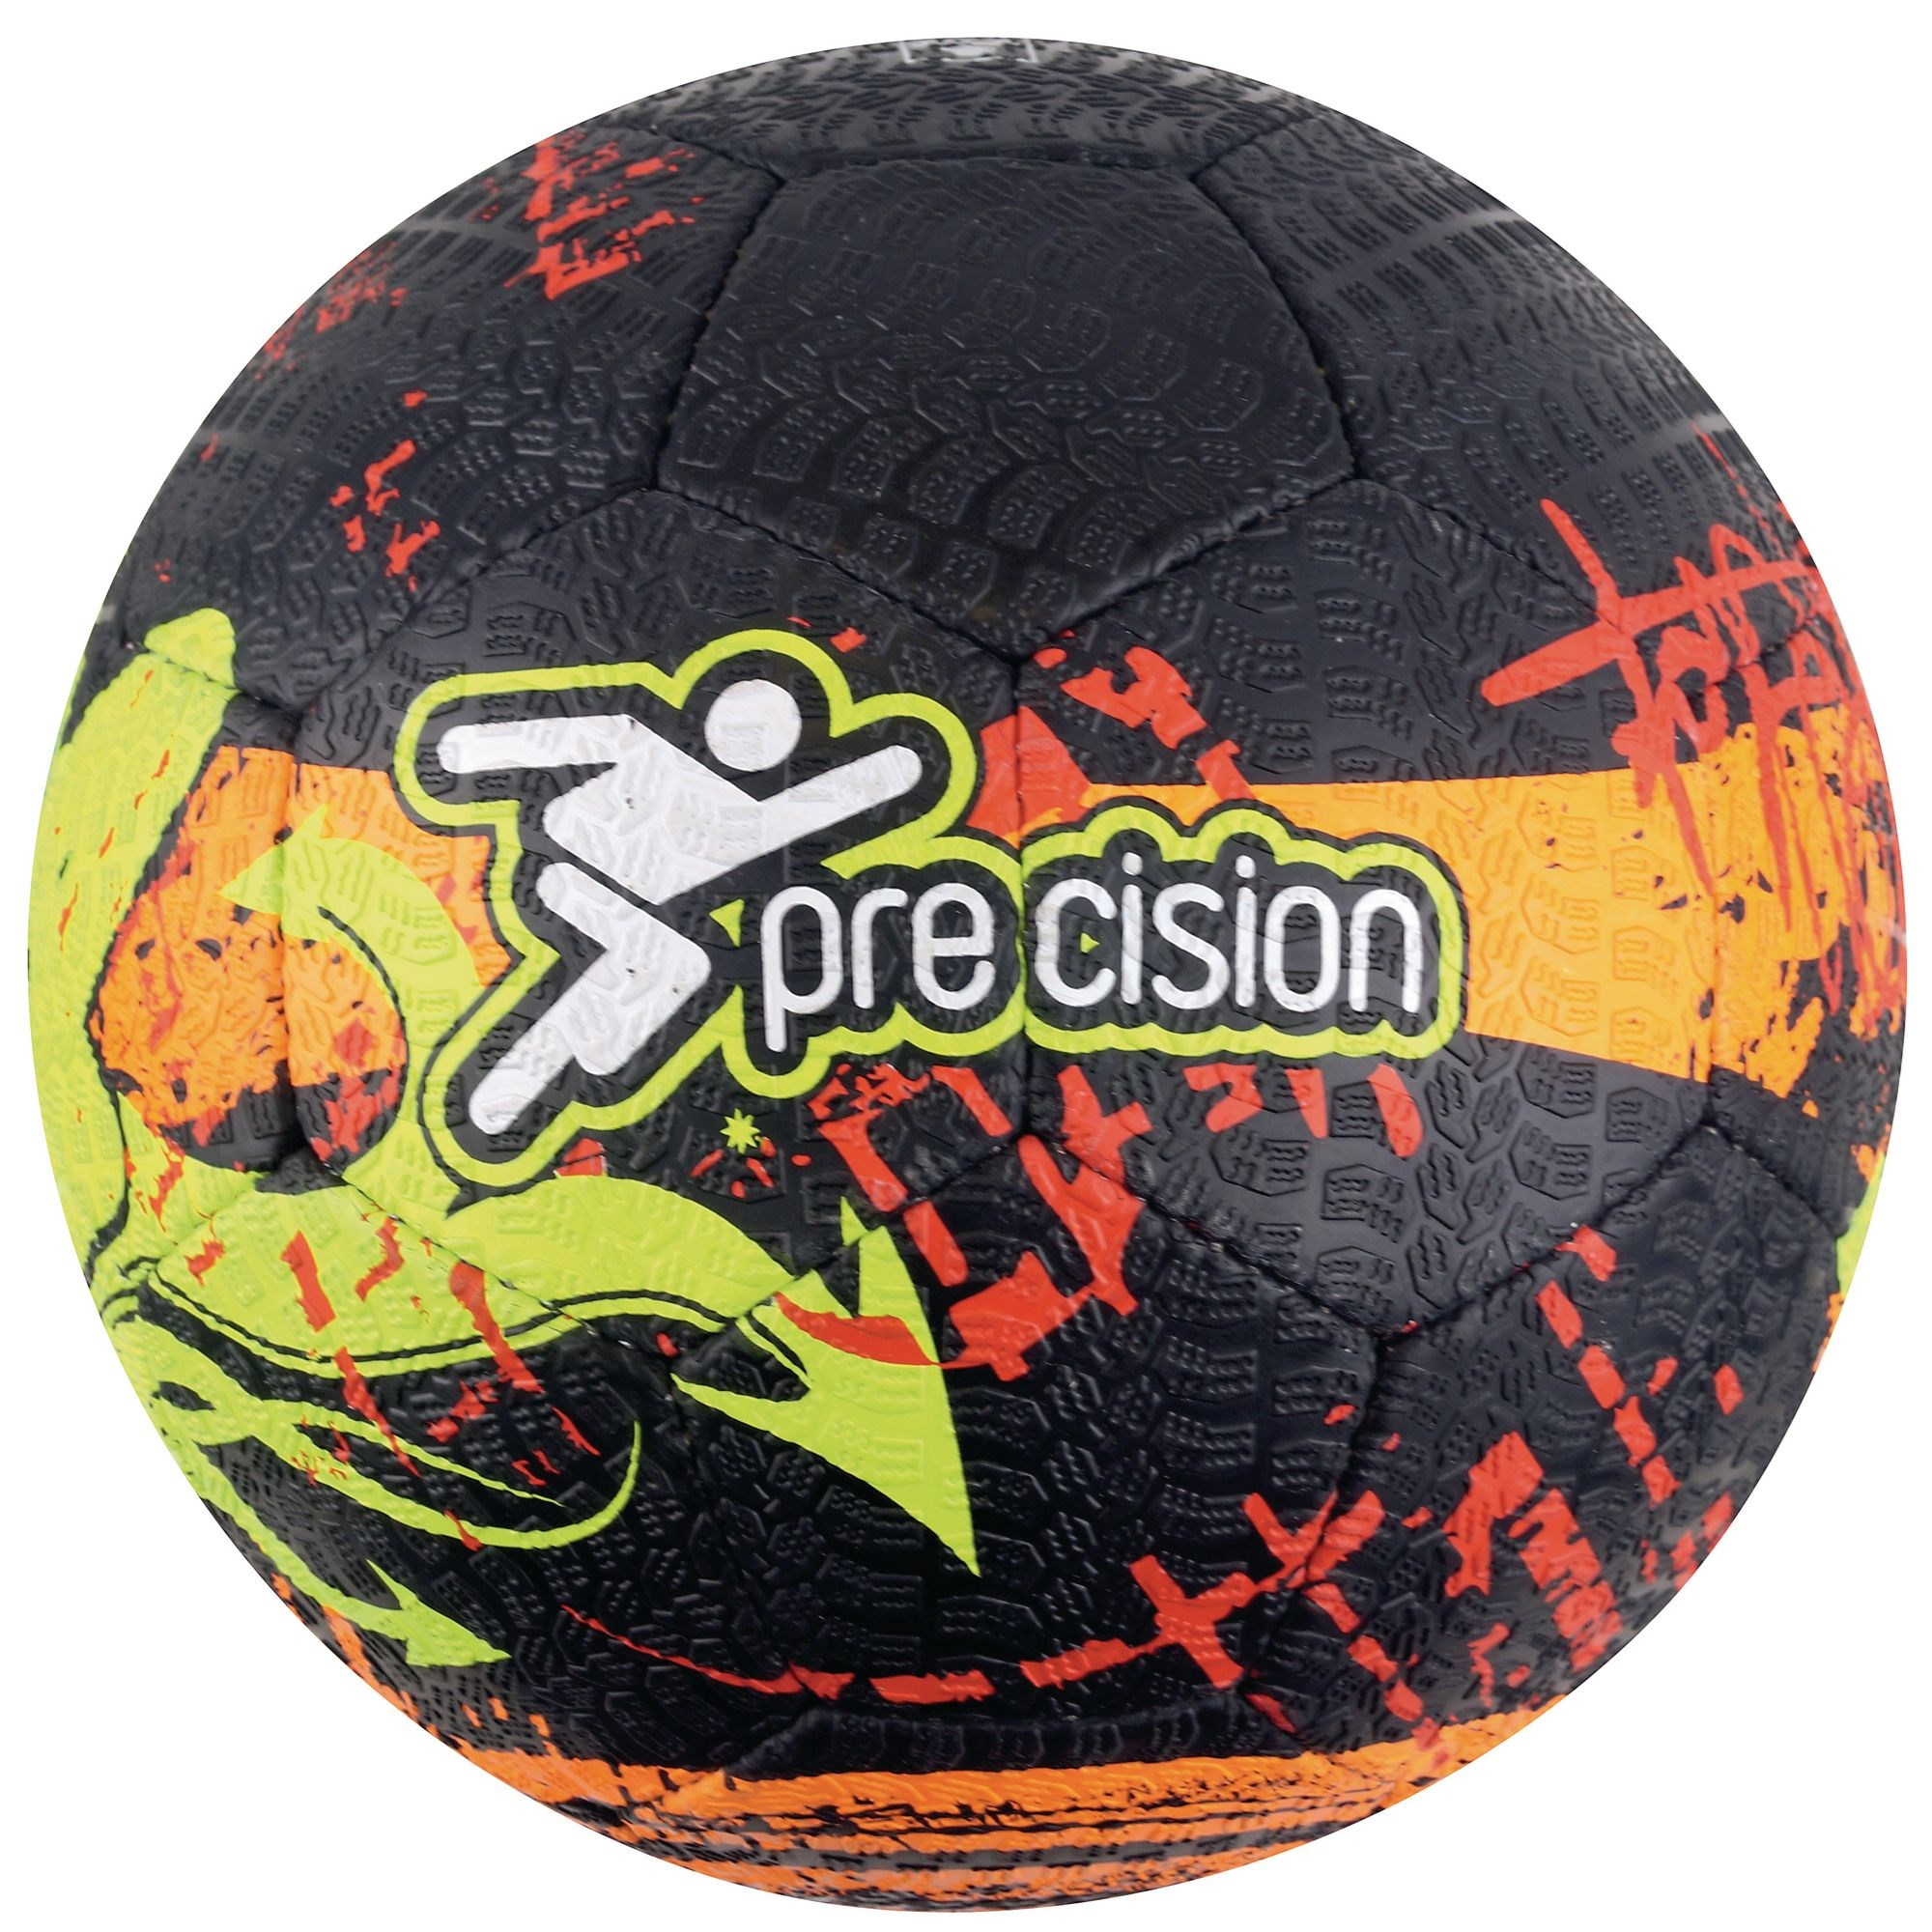 Precision Street Mania Ball - Size 5 - Fluo Yellow/Black